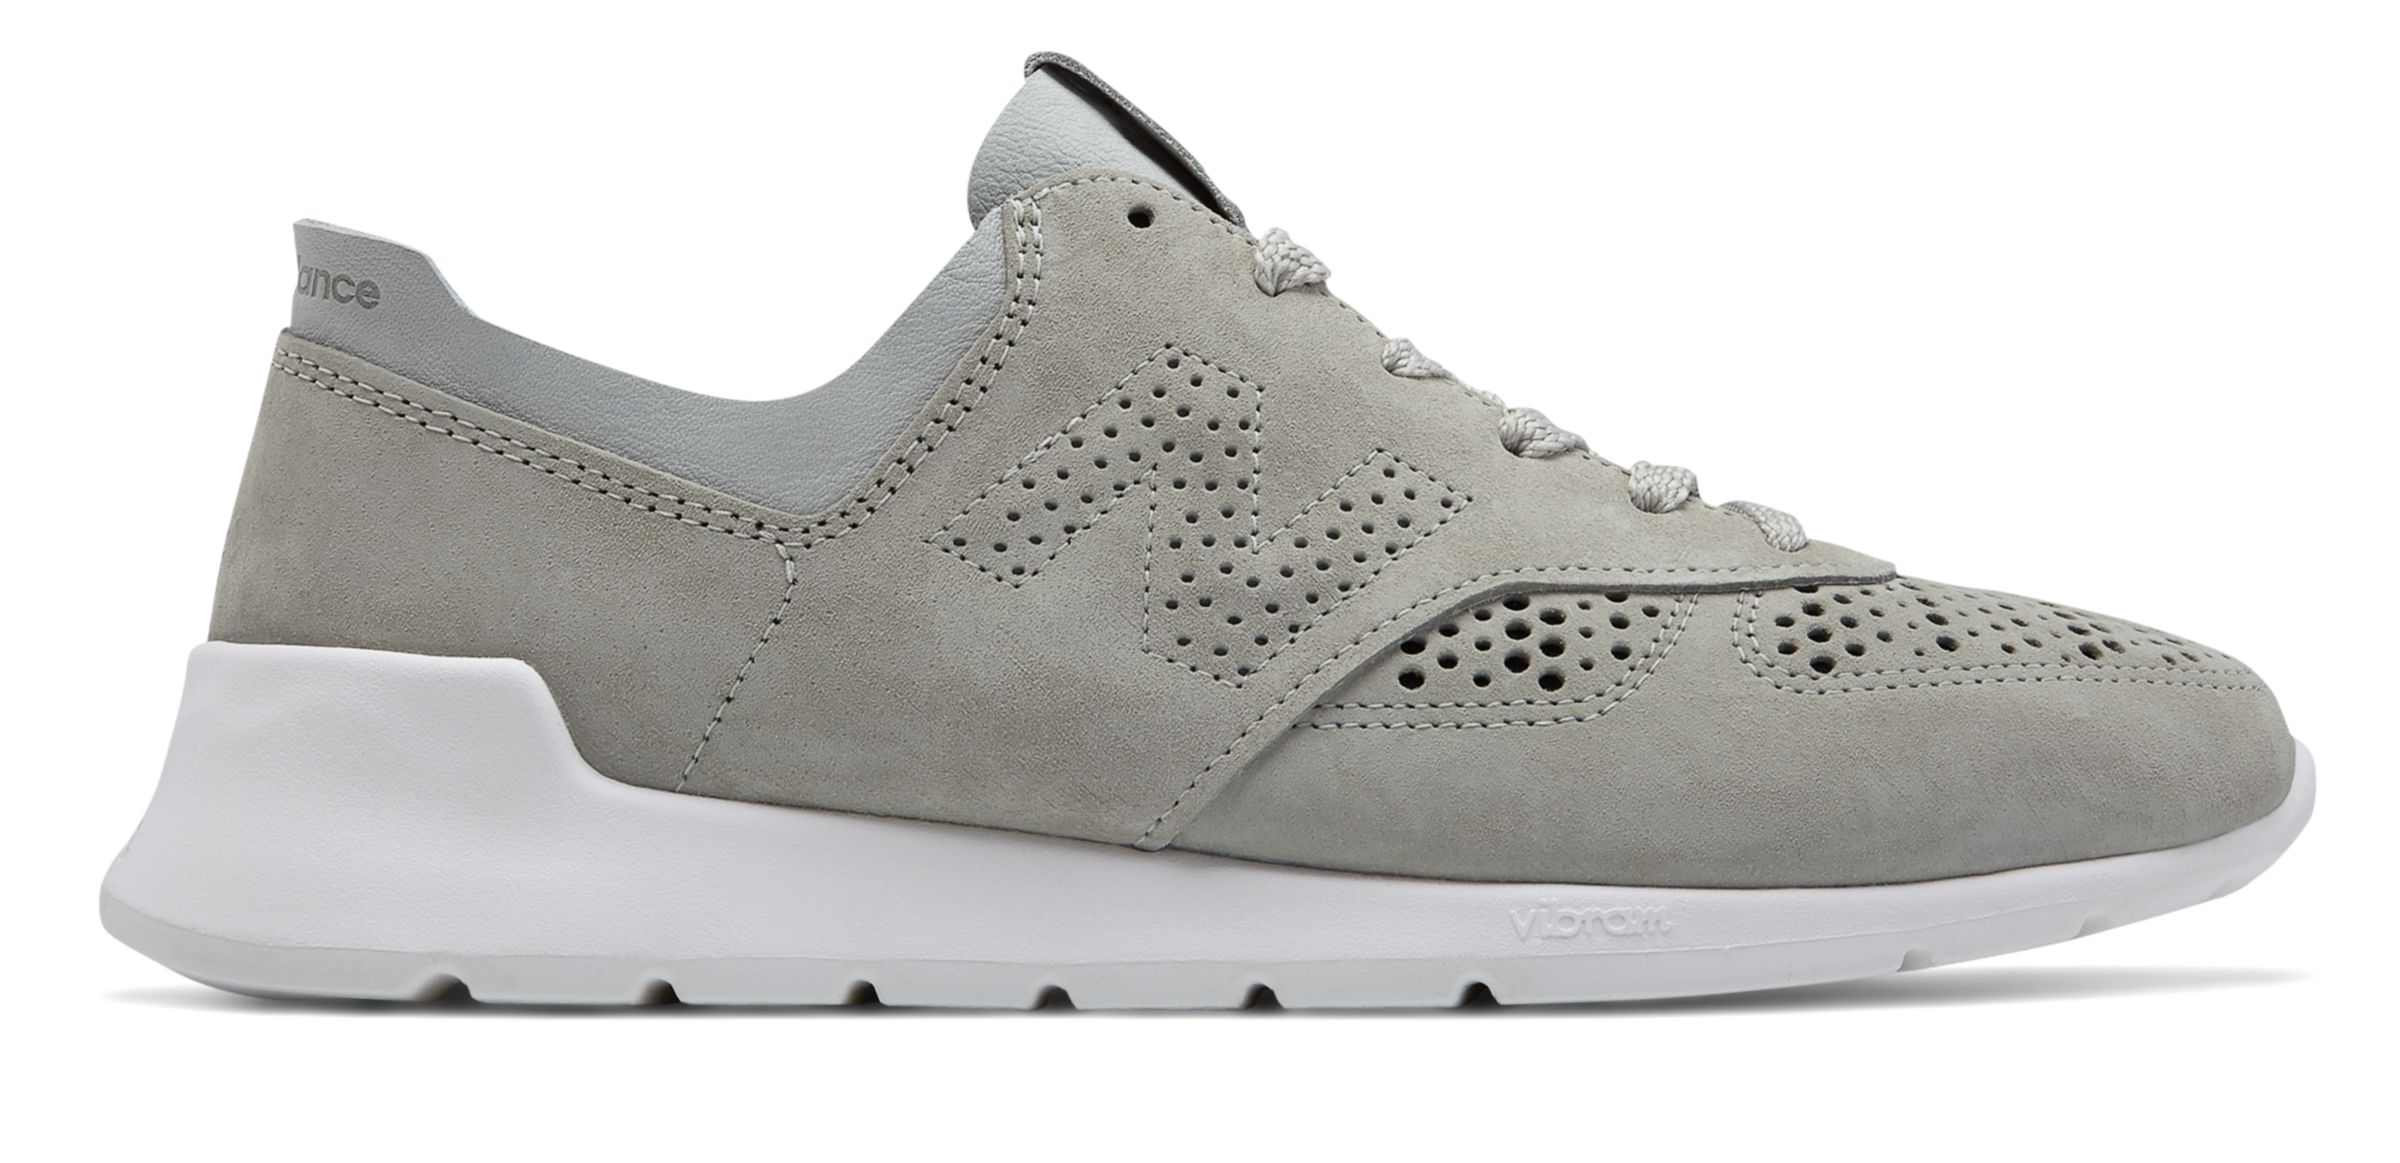 NB 1978 New Balance, Grey with White